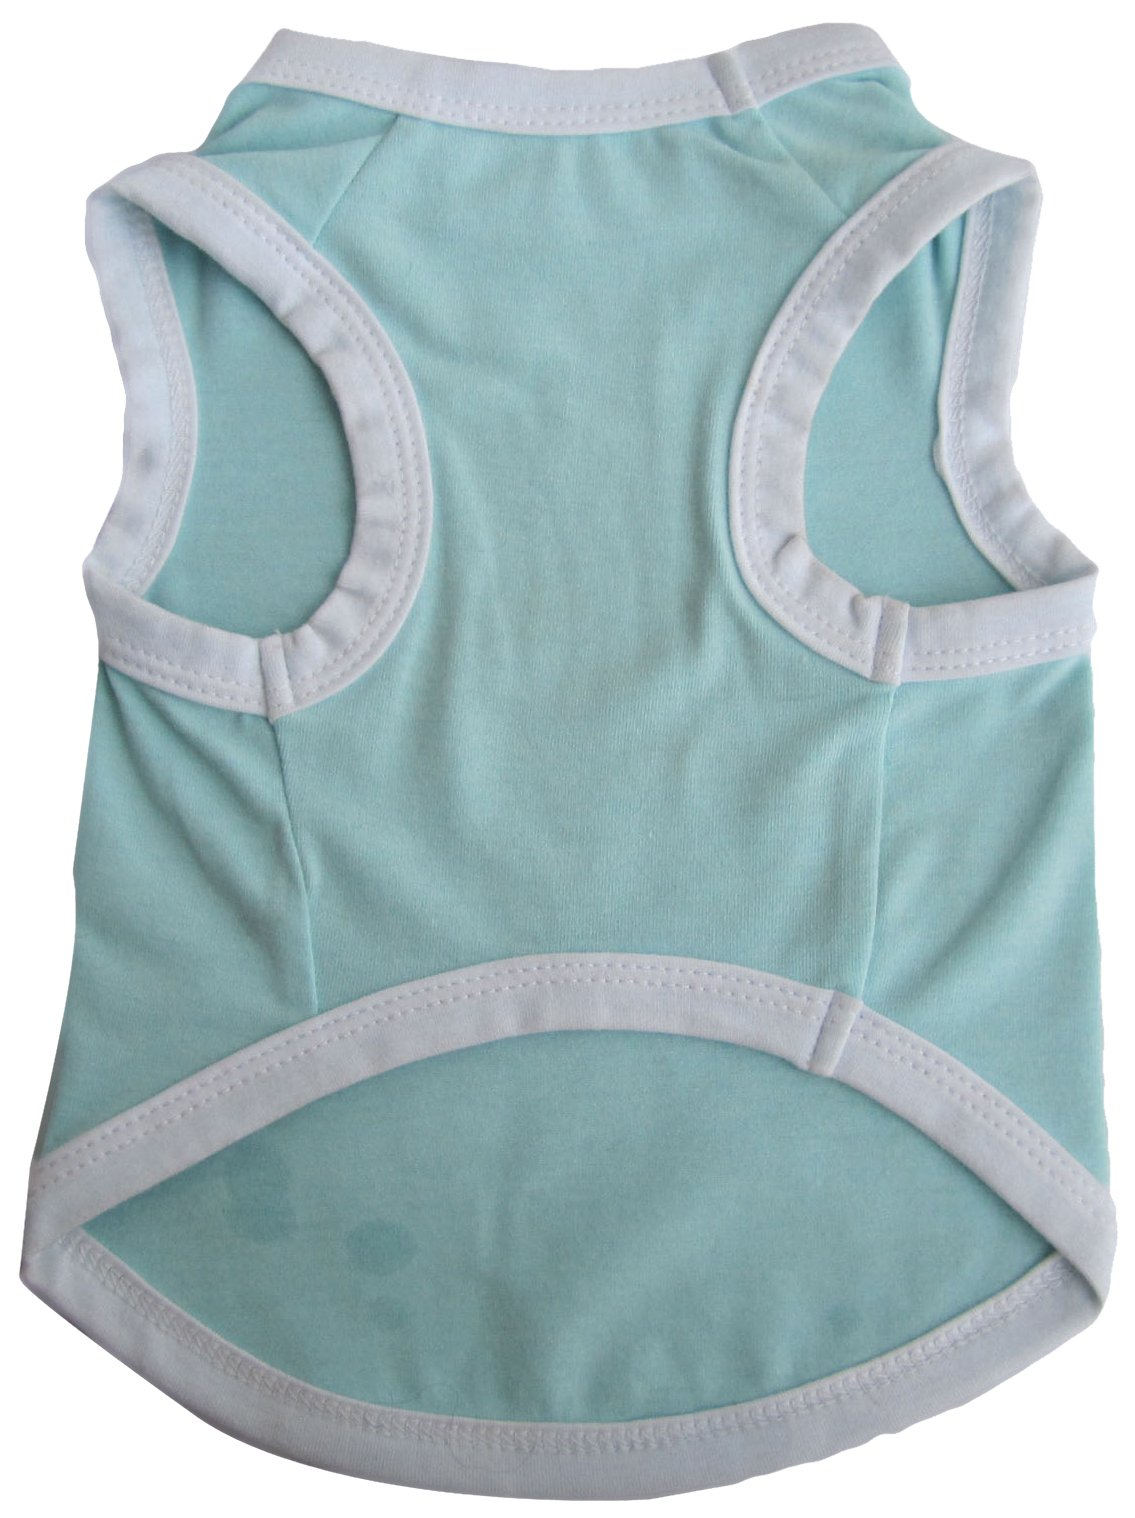 Iconic Pet Pretty Pet Tank Top, Small, Blue by Iconic Pet (Image #1)